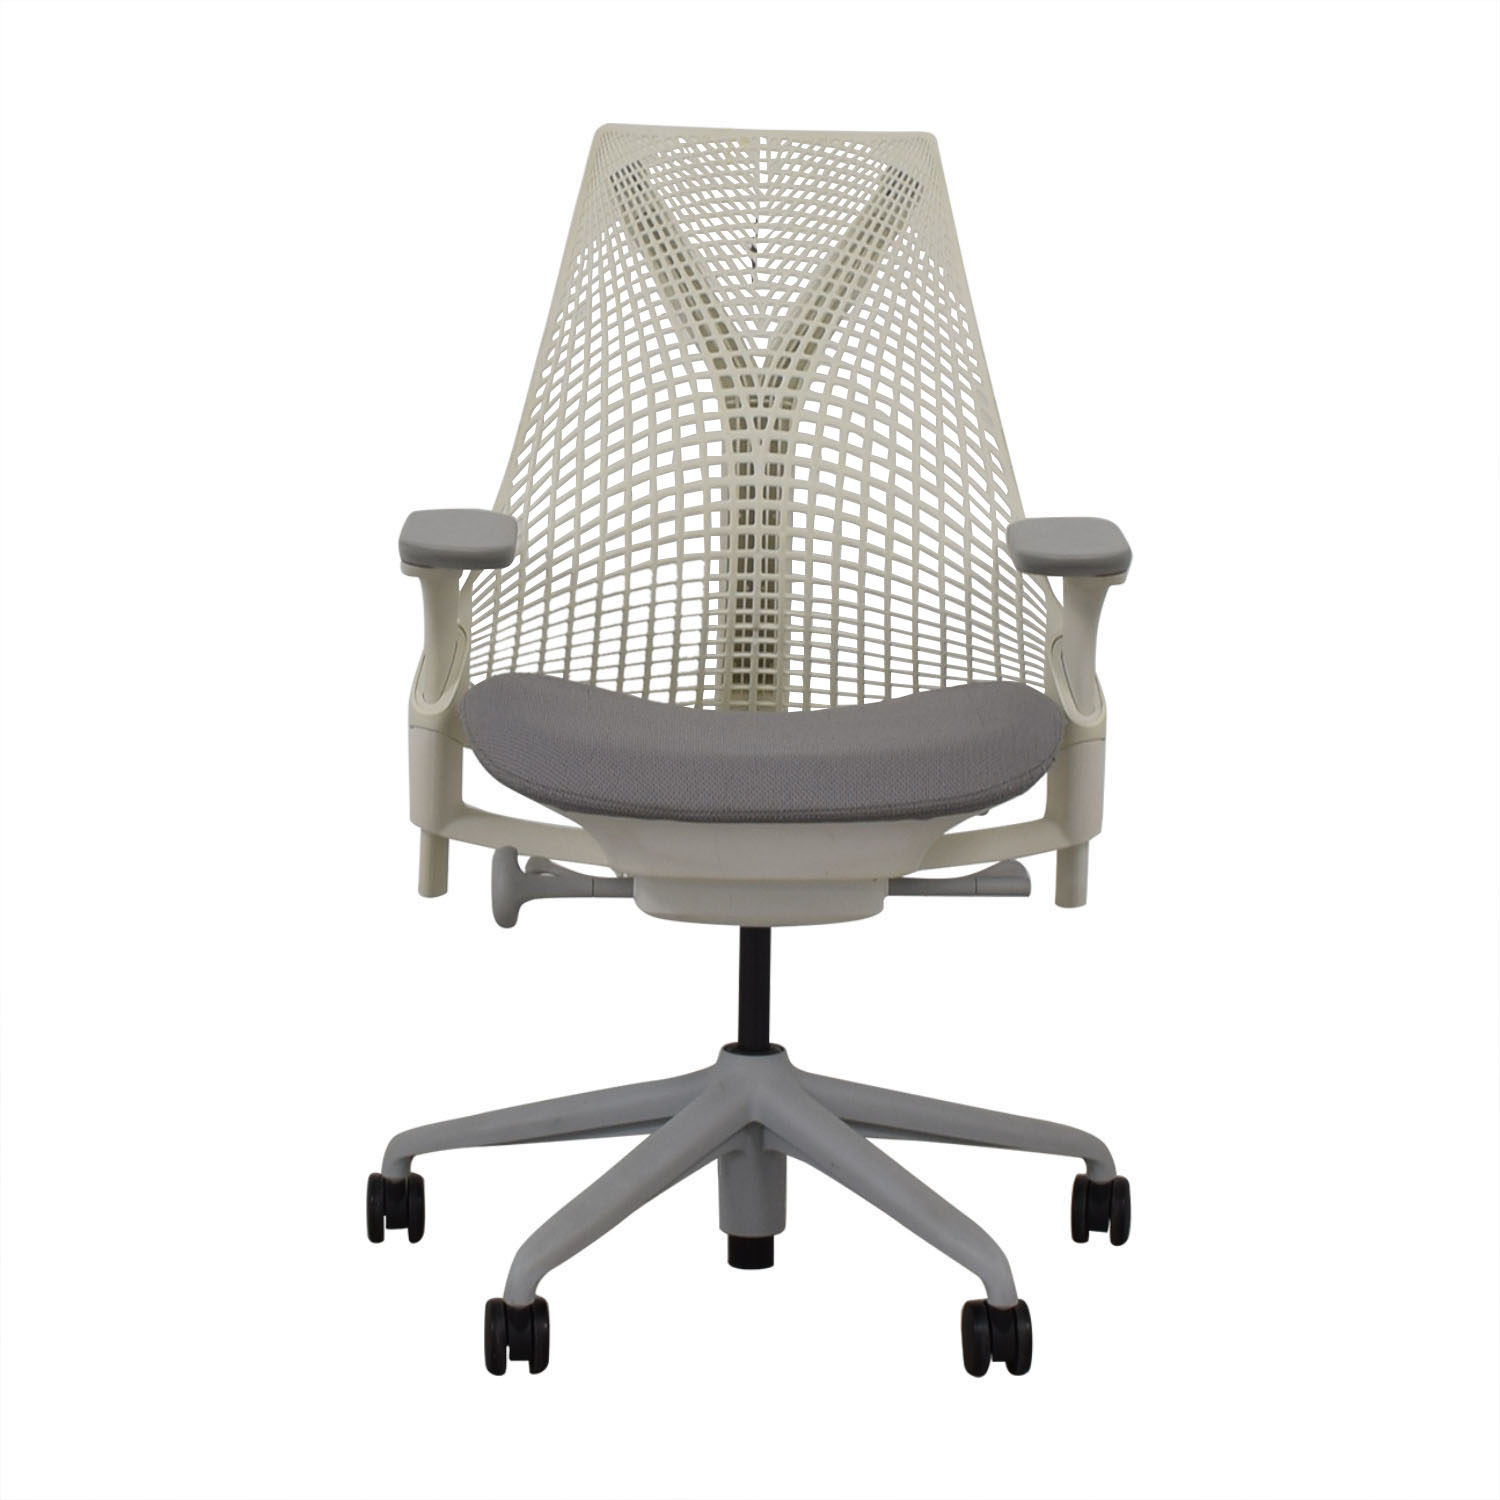 Design Within Reach Herman Miller by Yves Behar Sayl Task Chair for sale